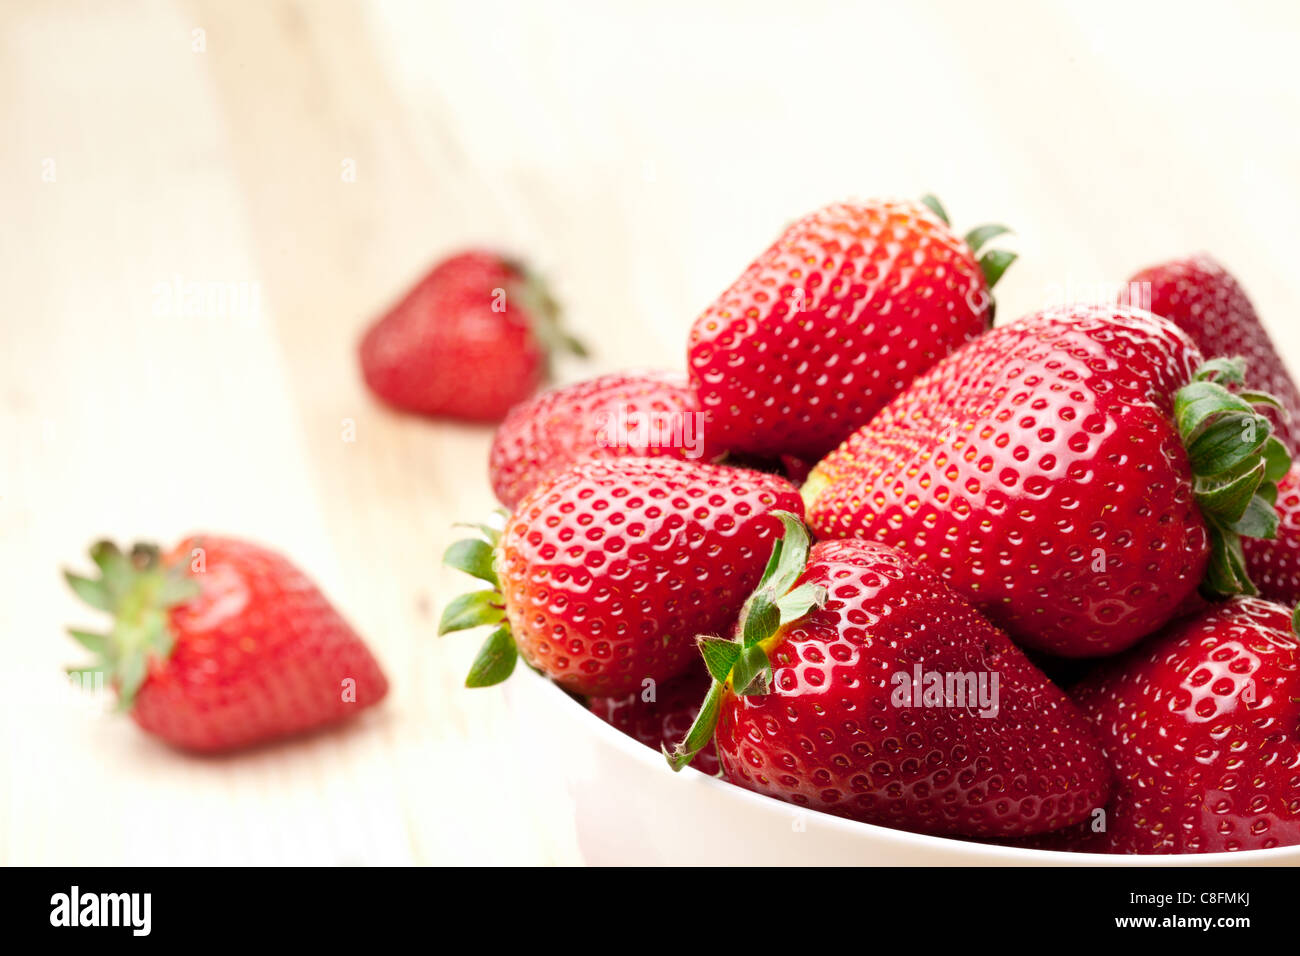 Appetizing strawberry in the bowl. Isolated on a white background. - Stock Image